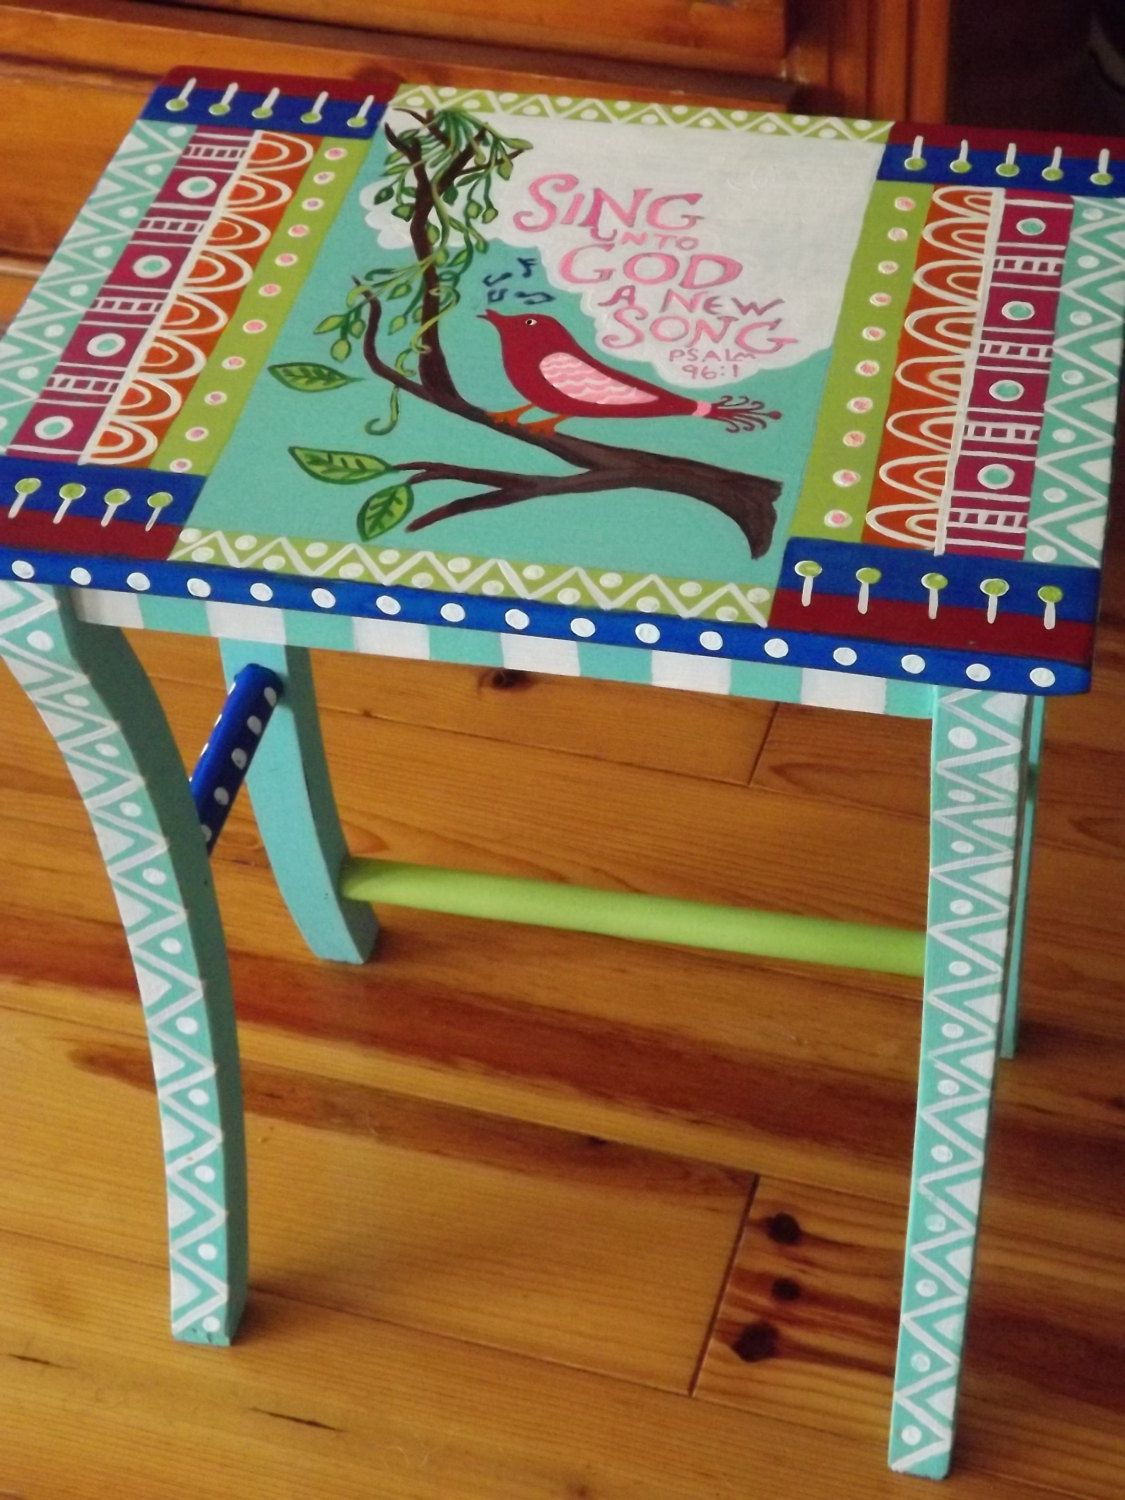 Whimsical furniture folk art table sing unto god bohemian art table by stellavictorias on etsy